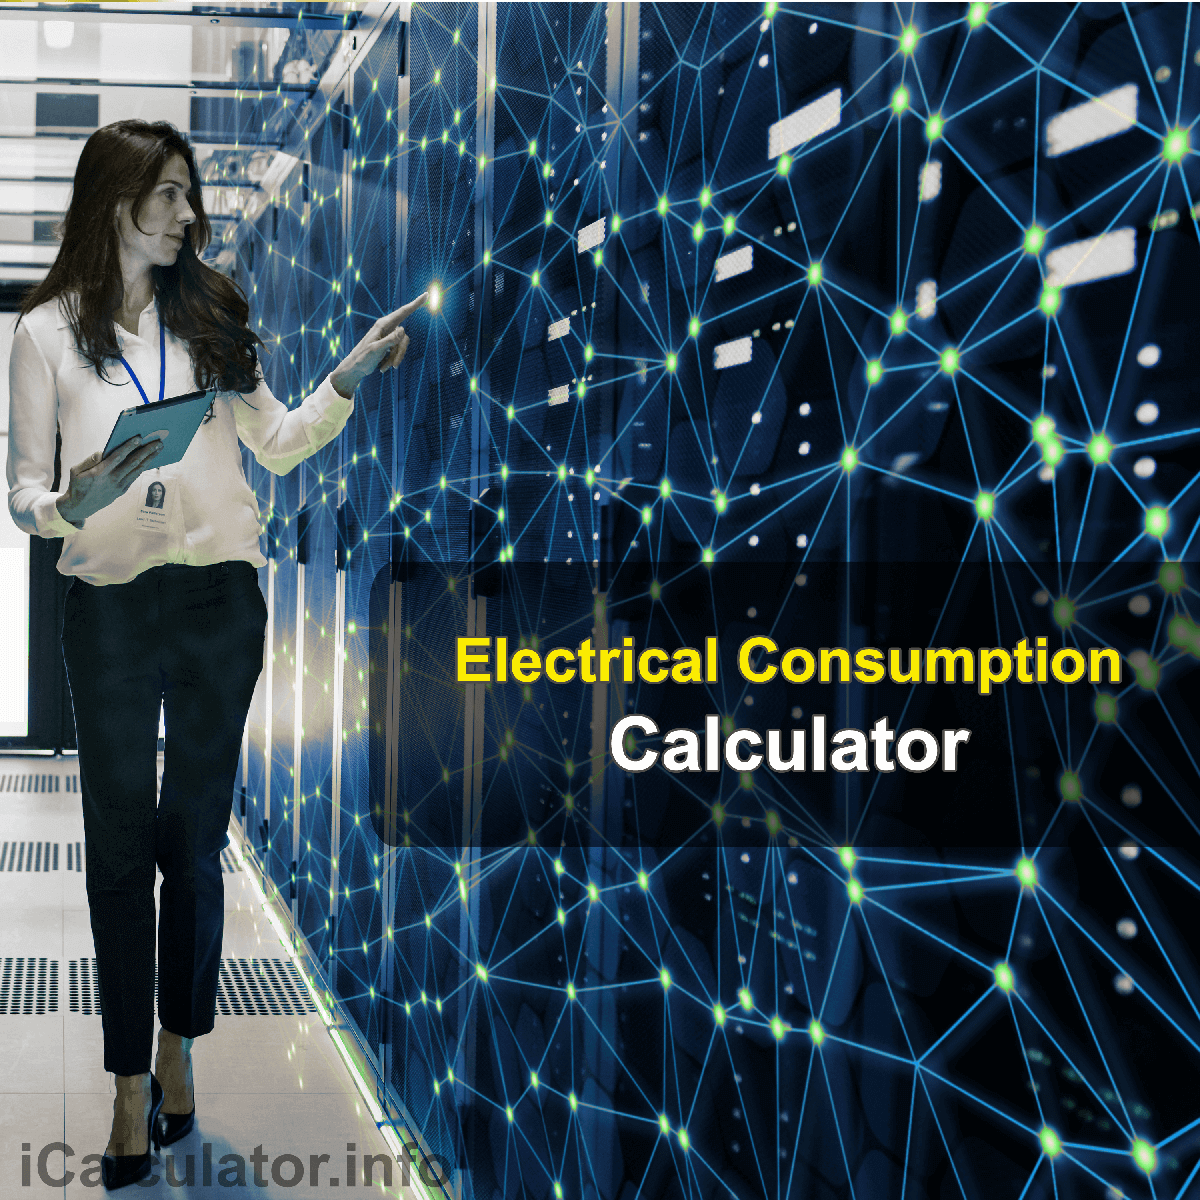 Household Electrical ConsumptionCalculator. This image provides details of how to calculate your household energy consumption using a good calculator, a pen and paper. By using the electrical energy consumption formula, the Household Electrical Consumption Calculator provides a comparison of the energy used by each of your appliances in your houselh along with the total annua costs to help you reduce your energy bills.